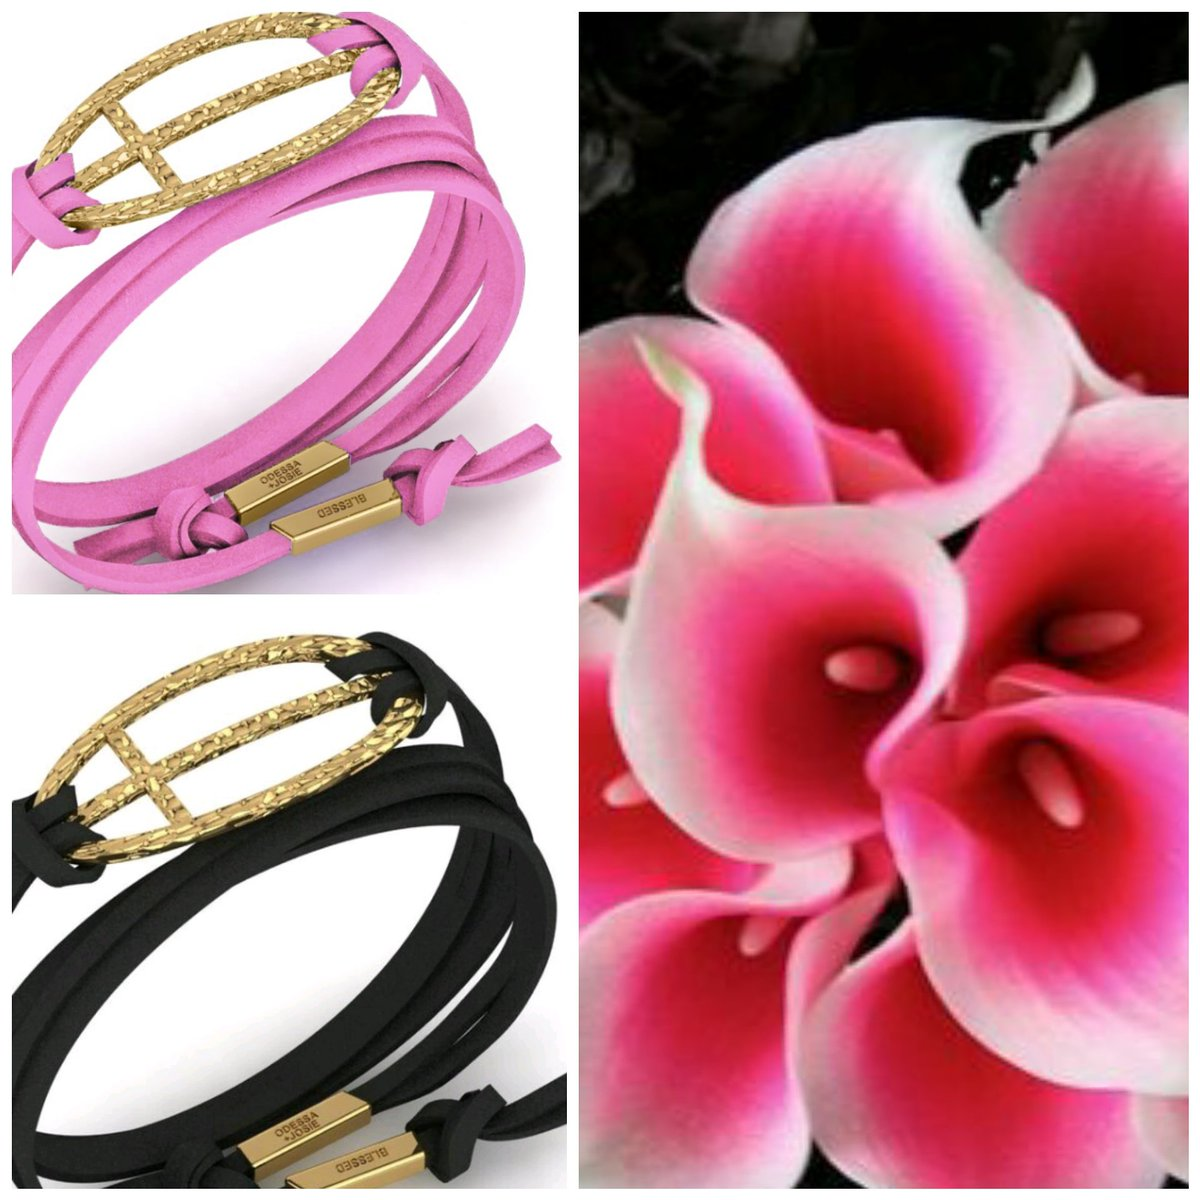 The Odessa Josie pink and black gold tone wrap bracelets. Visit our website .  http://www. odessajosiestyle.com  &nbsp;   #fashion #retweet #reply #like<br>http://pic.twitter.com/YmBYGq4Vgv